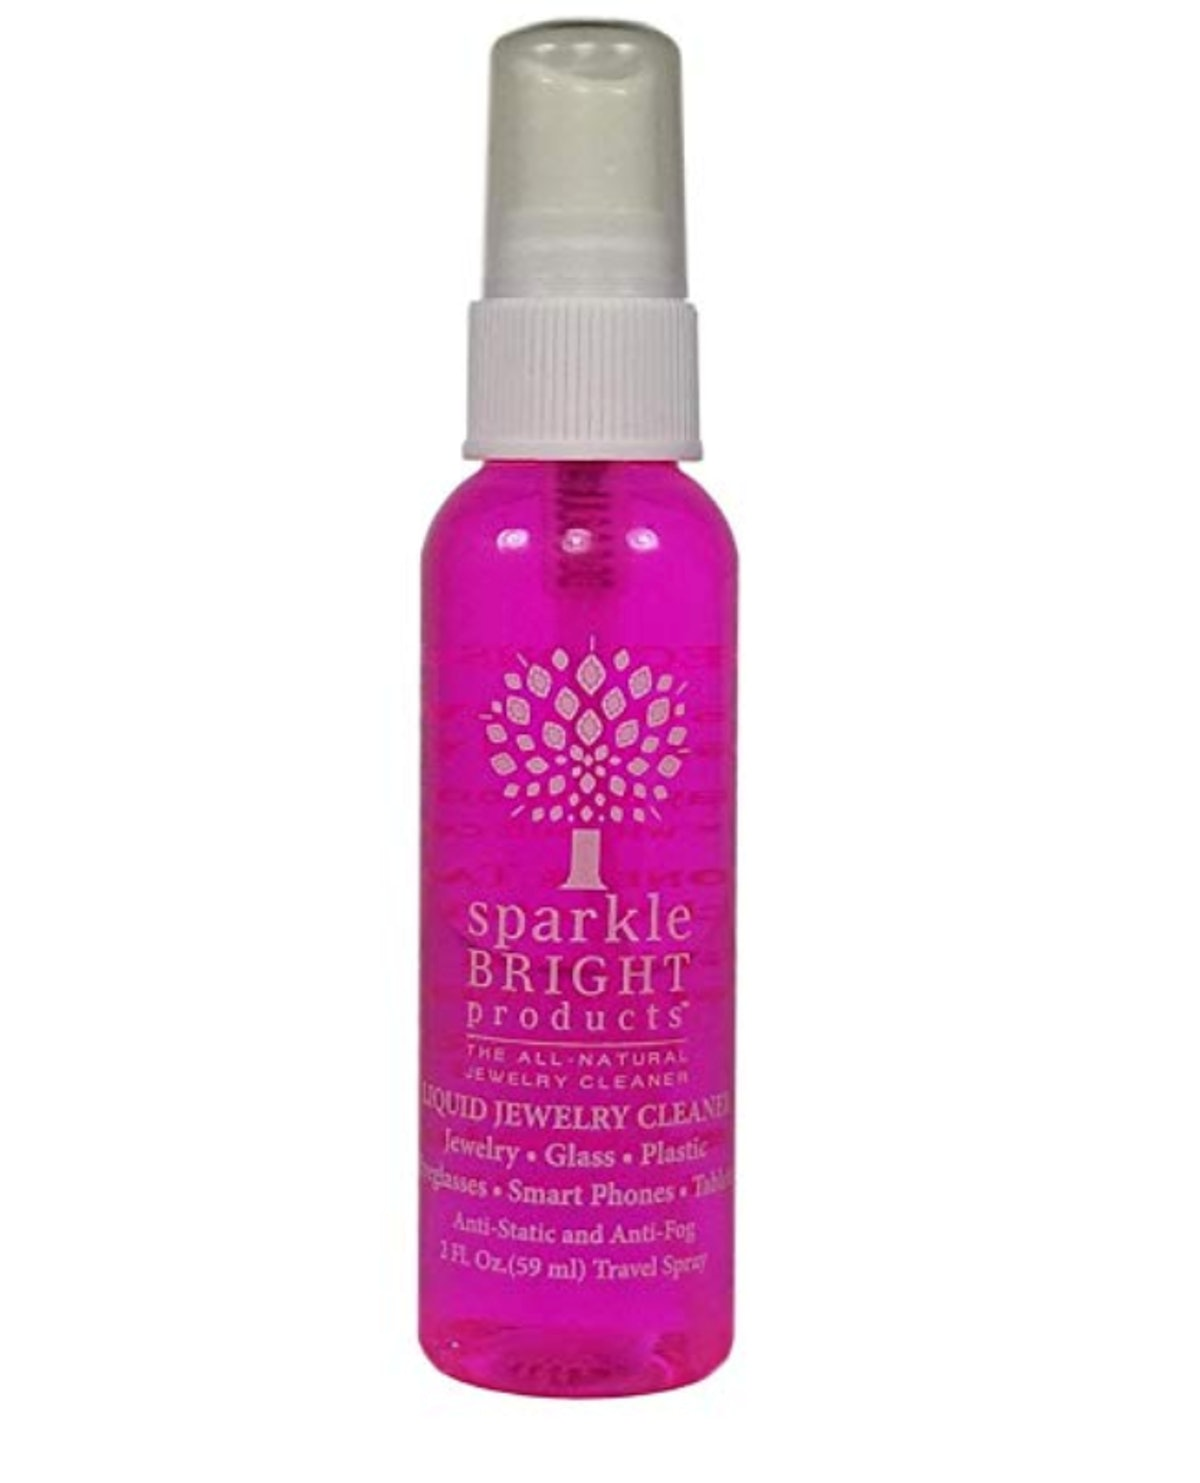 Sparkle Bright Productions Jewelry Cleaner